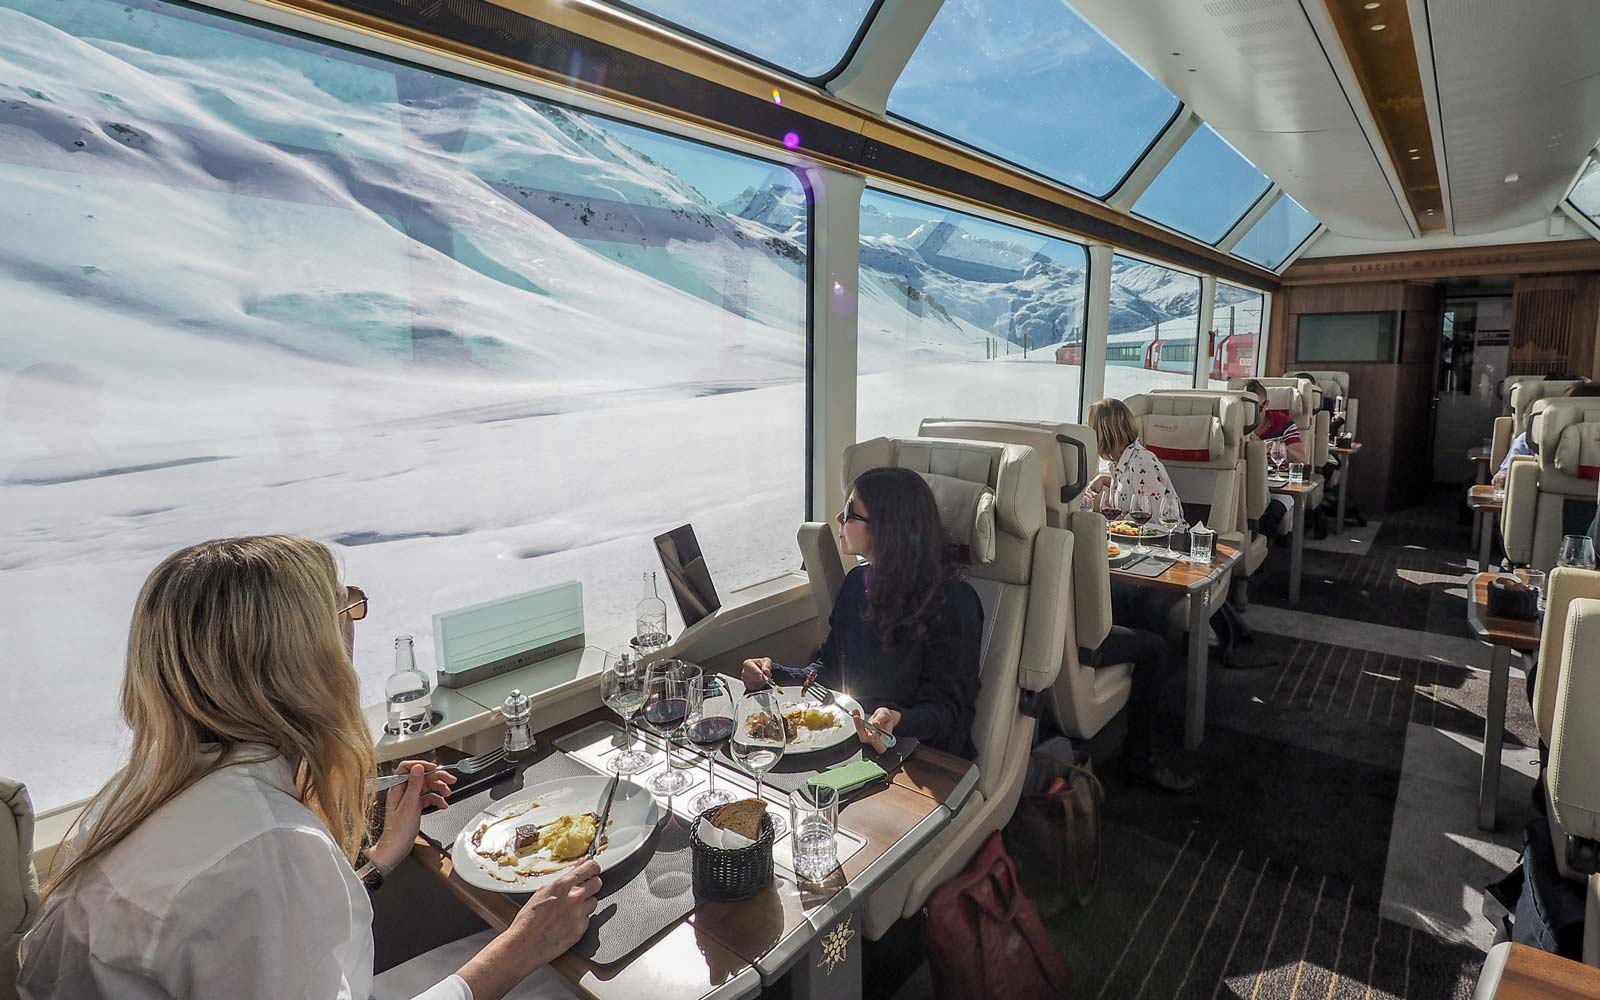 Switzerland's Glacier Express Train Unveils New 'Excellence' Class Complete With Panoramic Views of the Swiss Alps and 7-course Meals